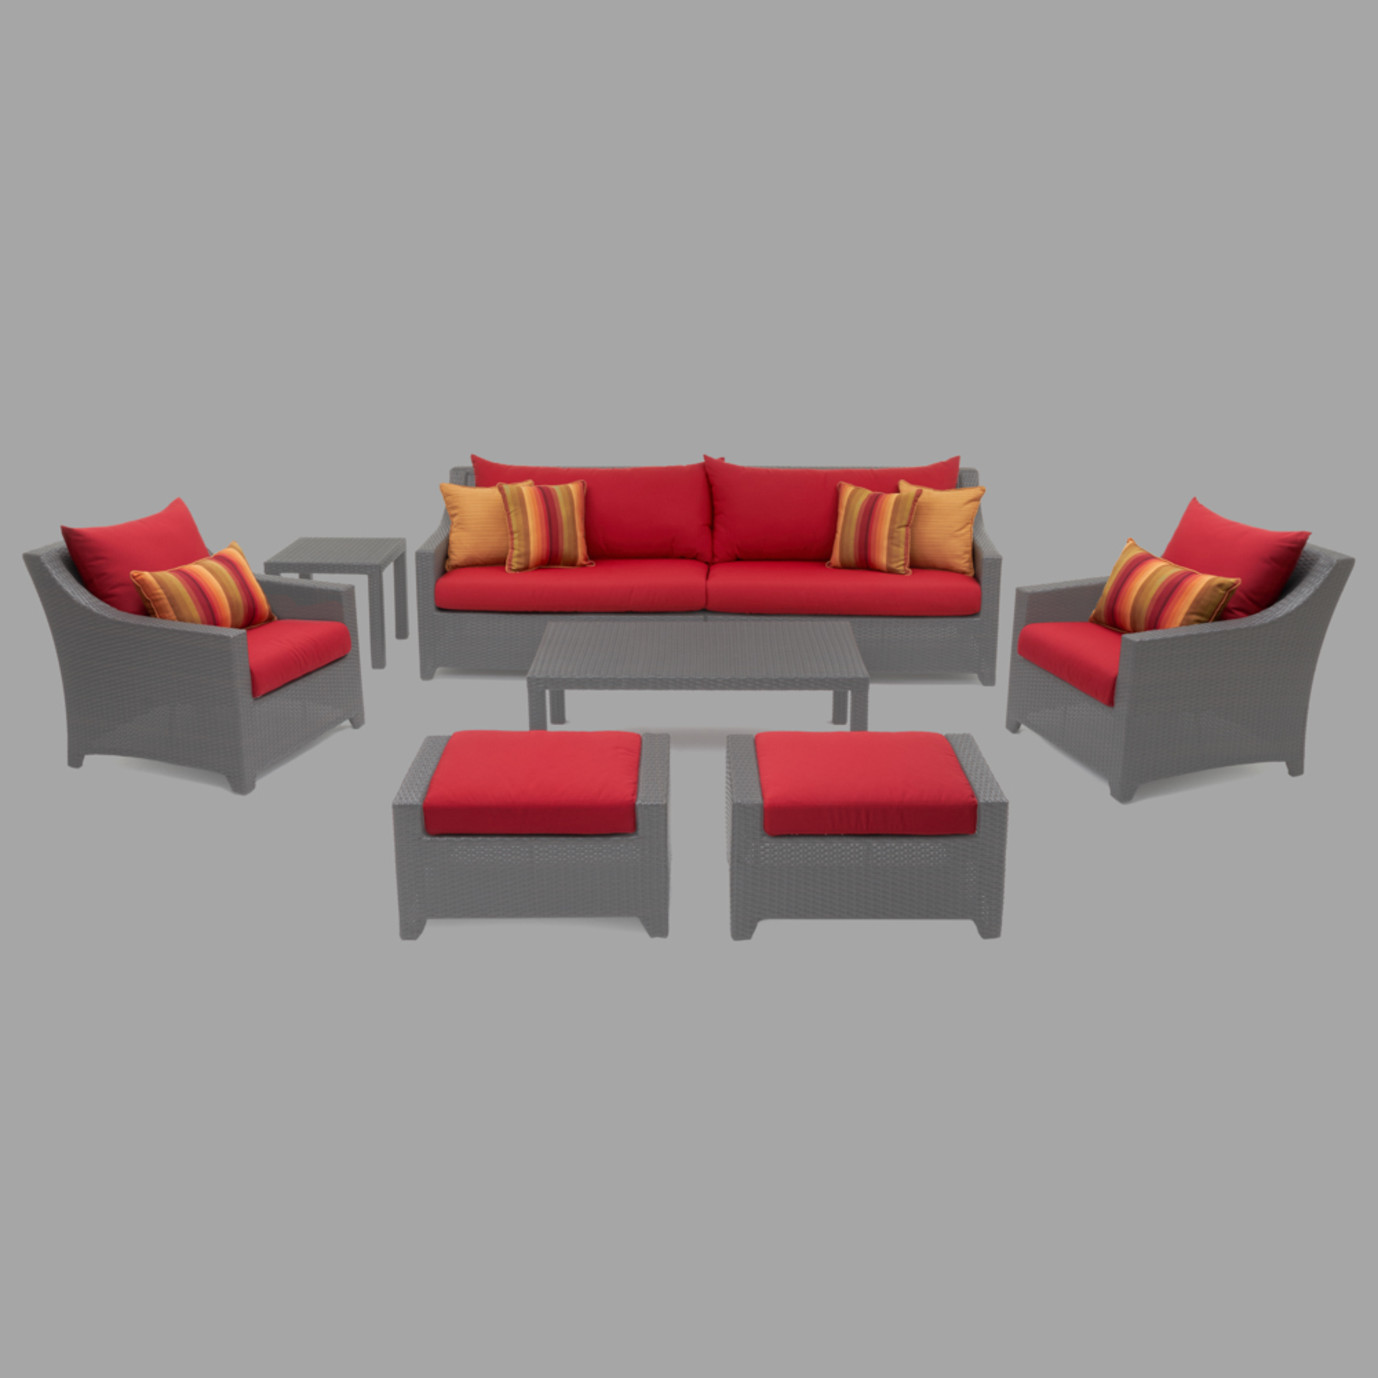 Modular Outdoor 8 Piece Club Cushion Cover Set - Sunset Red